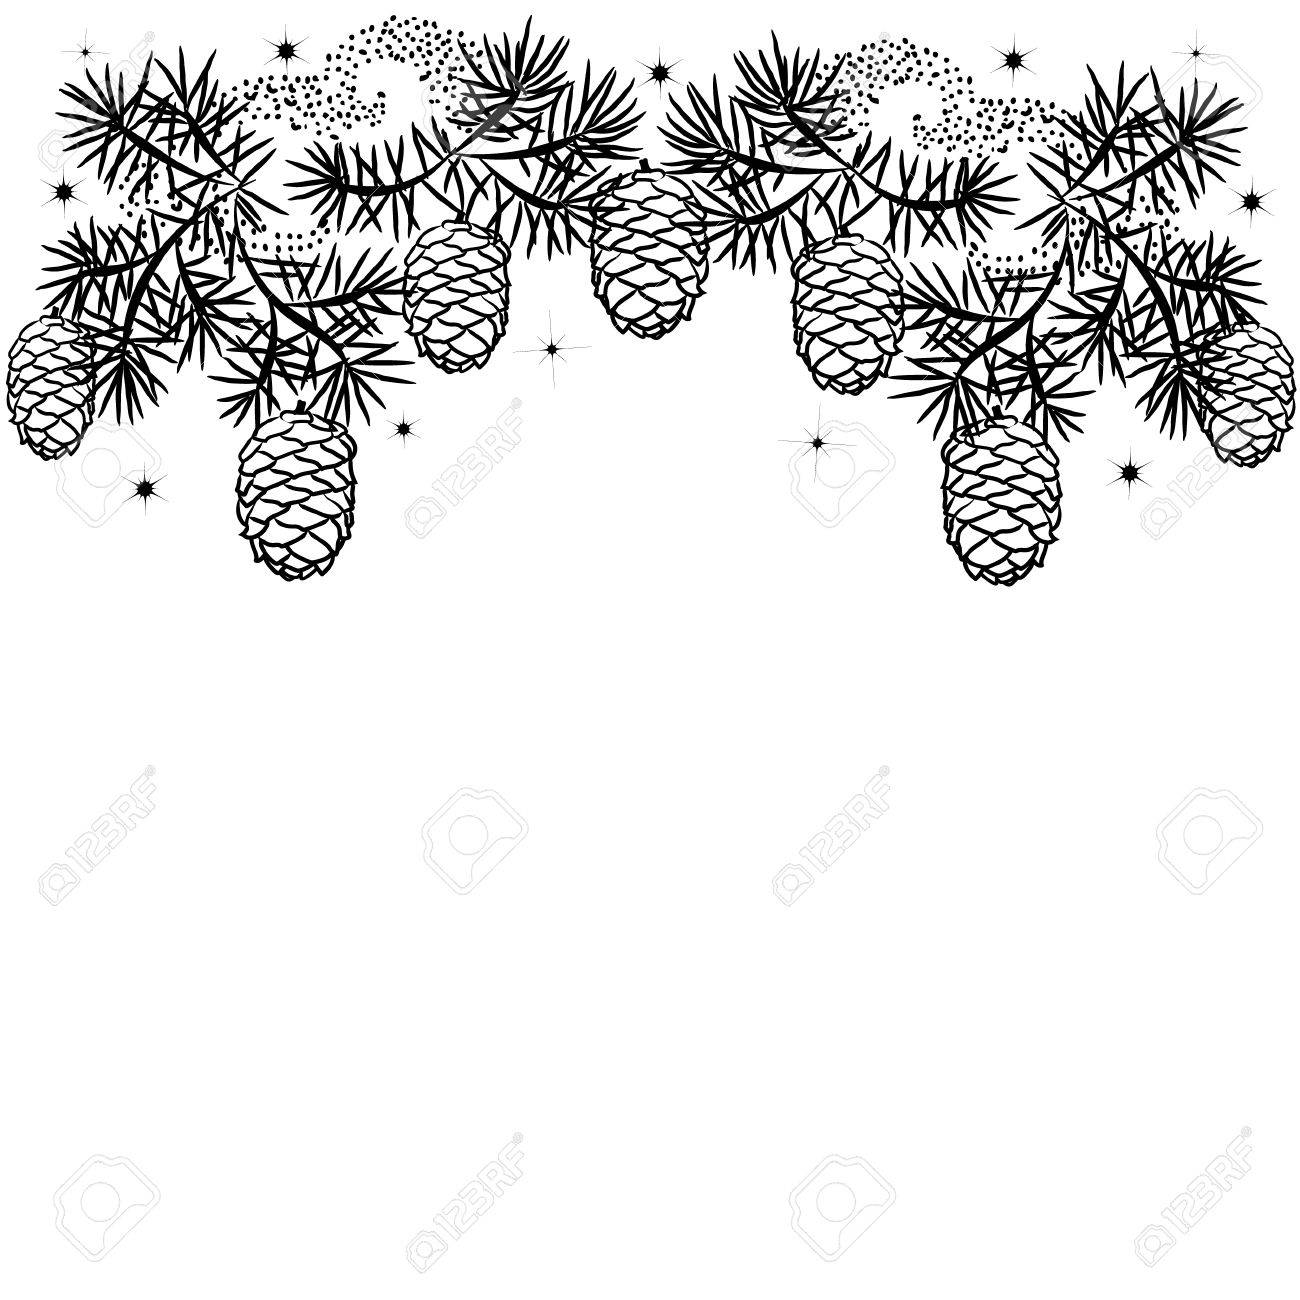 Christmas Border Black And White.Silhouette Illustration Christmas Border Of Pine Branches With